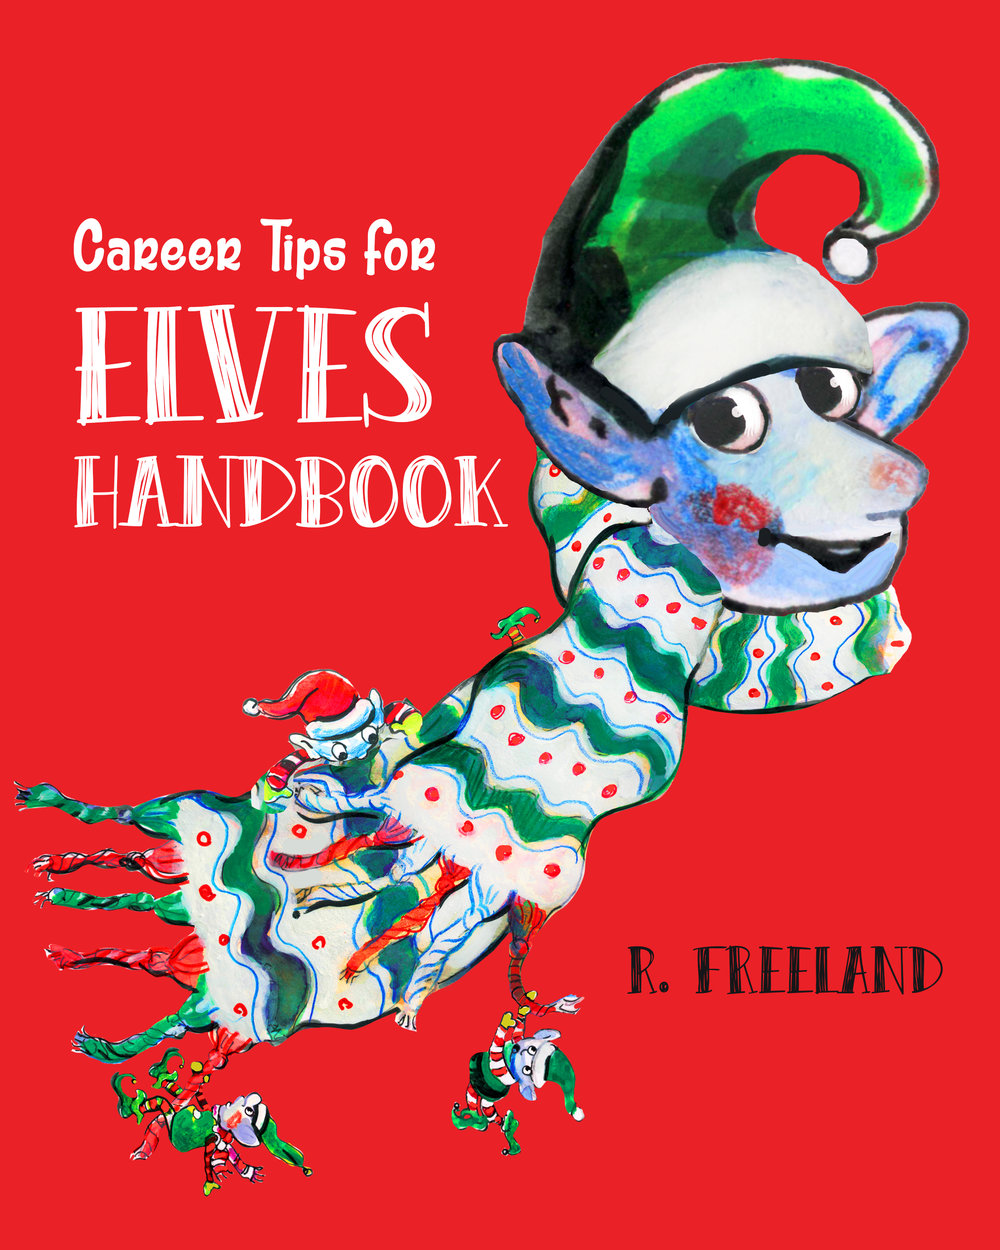 Coming Soon: Career Tips for Elves Handbook by R. Freeland -